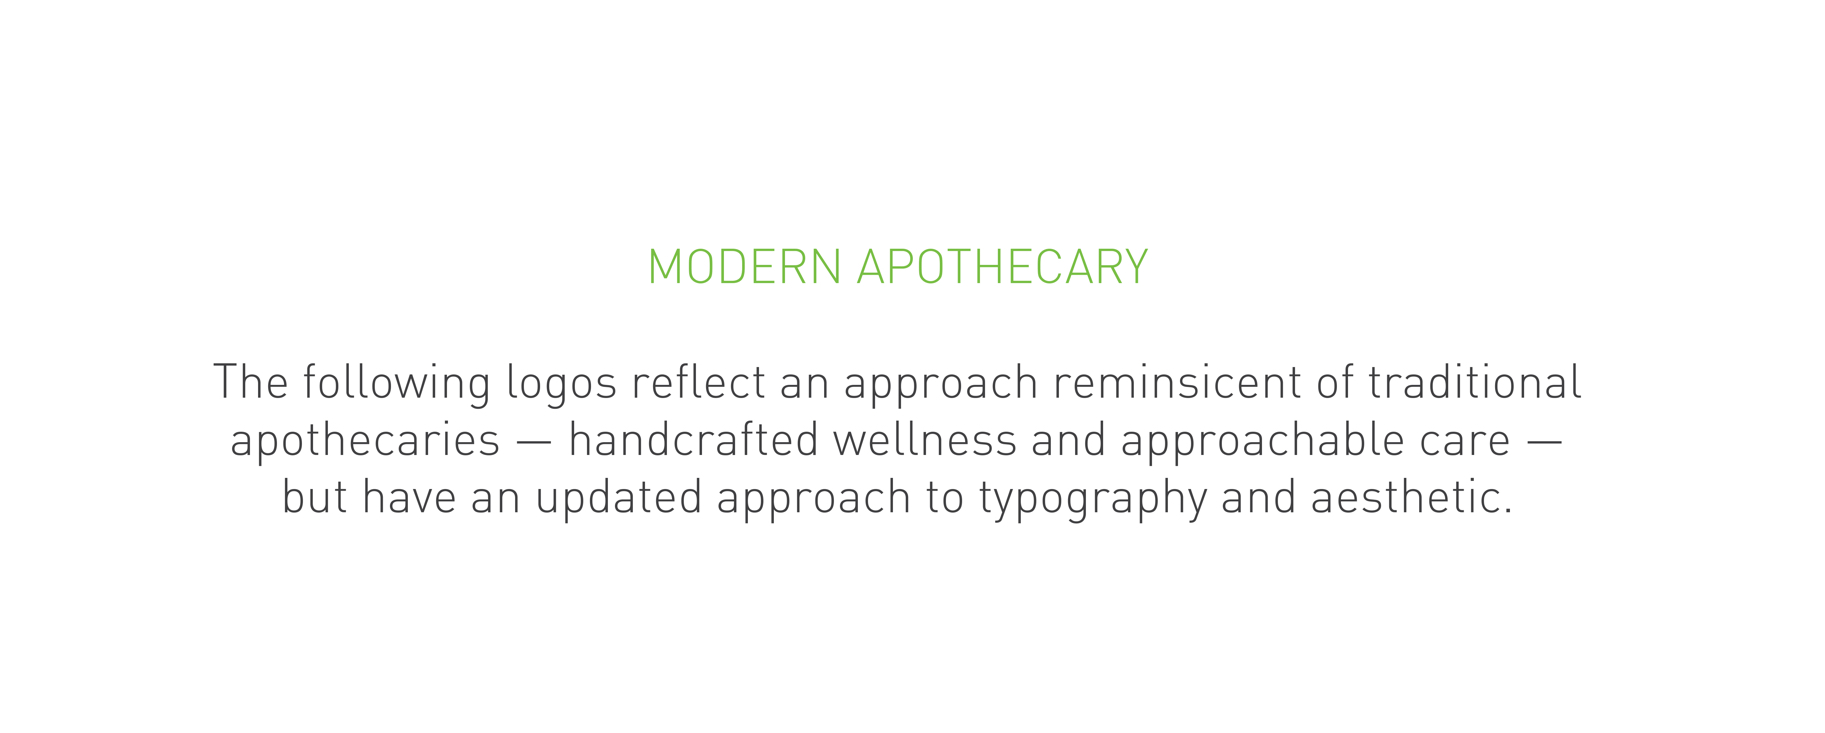 MODERN APOTHECARY — The following logos reflect an approach reminiscent of traditional apothecaries — handcrafted wellness and approachable care — but have an updated approach to typography and aesthetic.